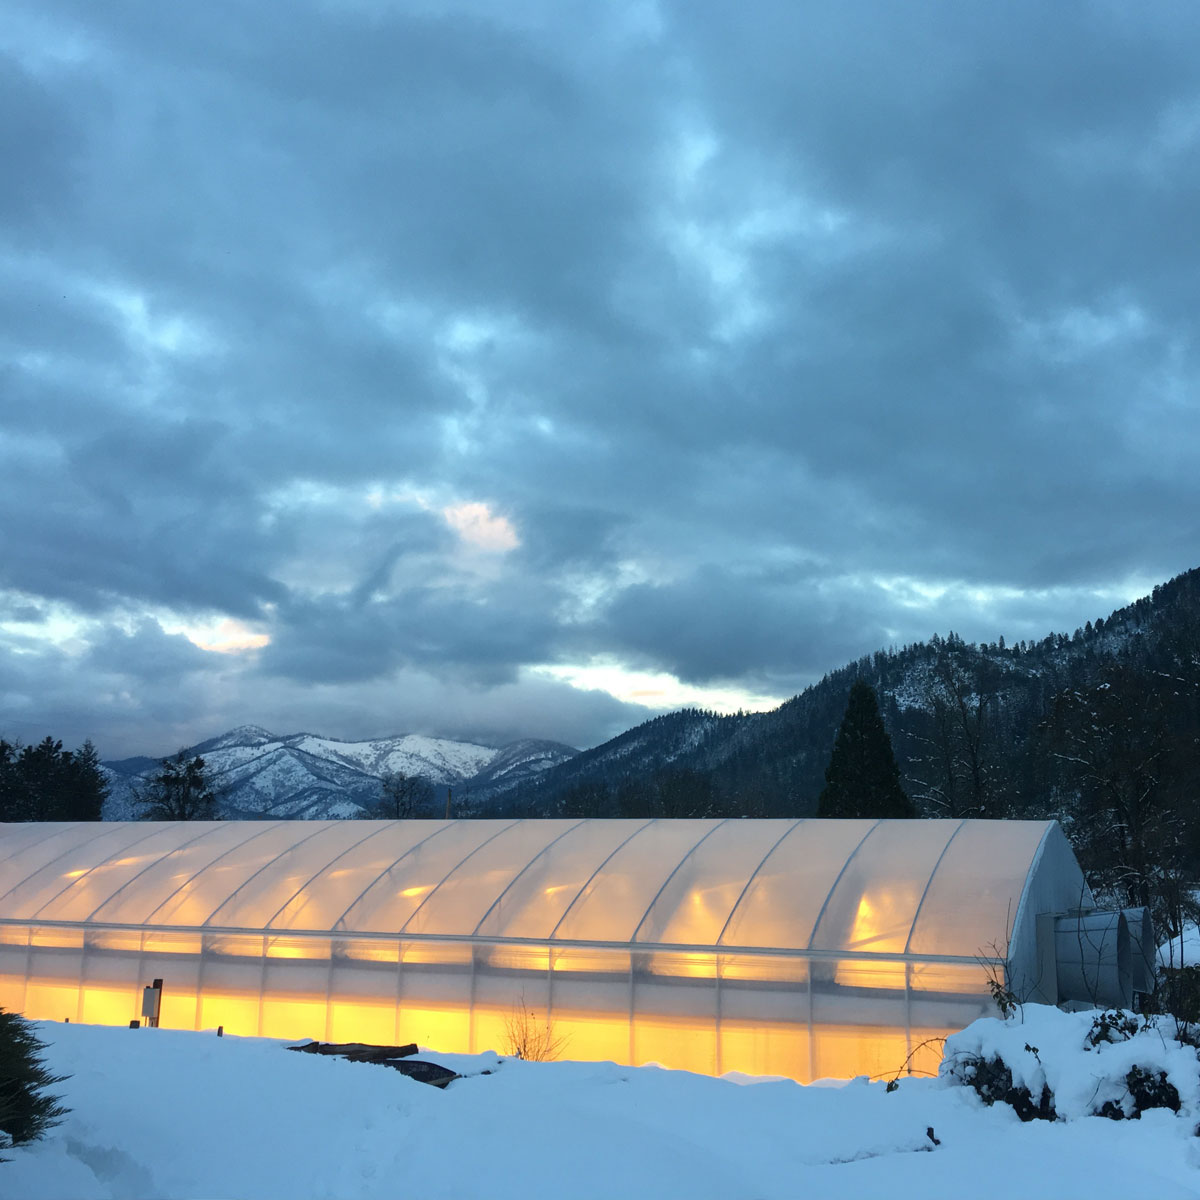 Titan Cathedral Greenhouse in the Snowy mountains